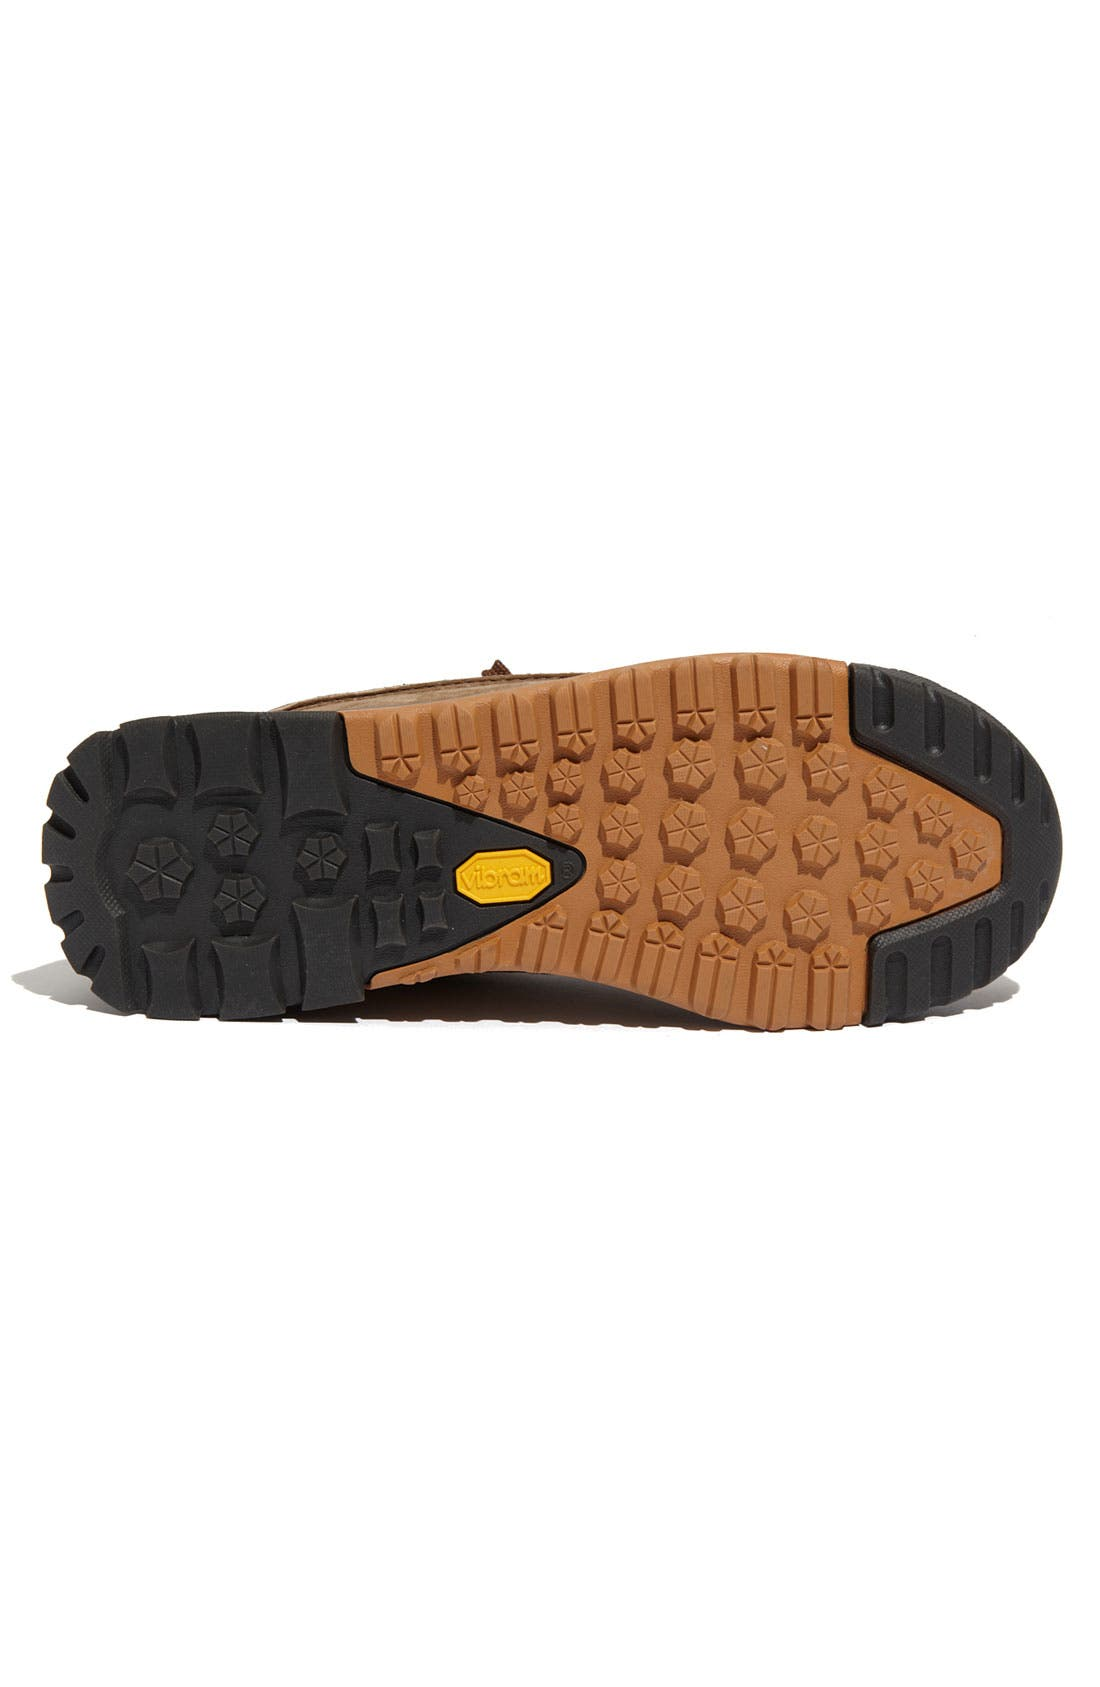 Alternate Image 4  - Patagonia 'Hog Tie' Multi Sport Shoe (Men)